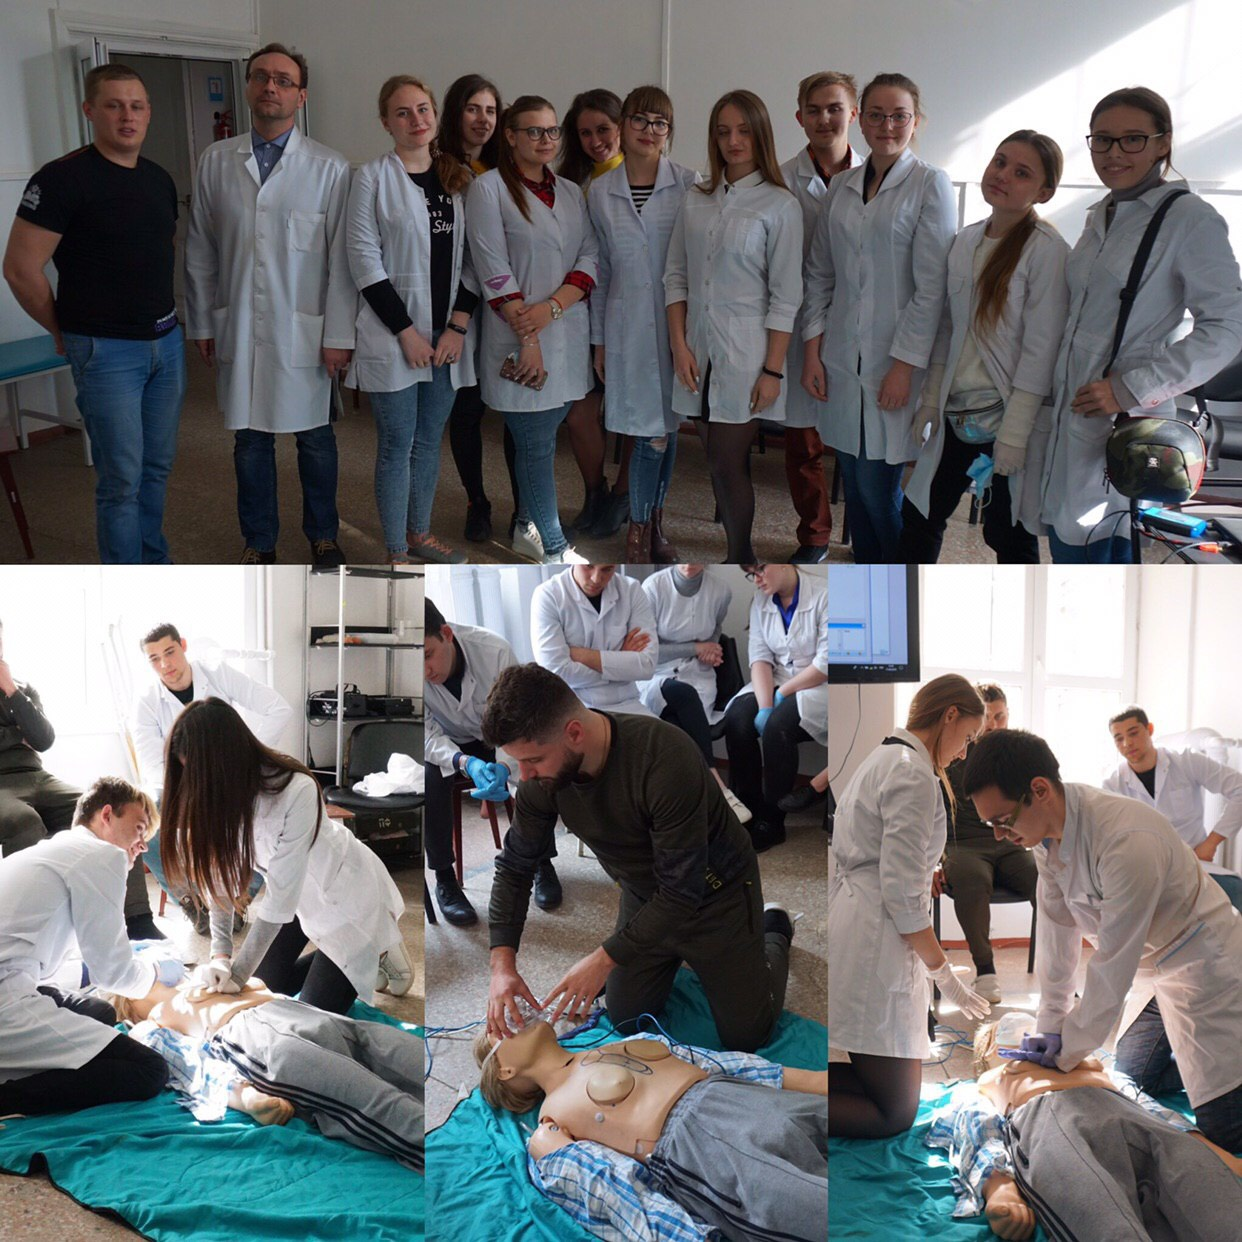 Master Class on the Basis of BLS (Cardiopulmonary Resuscitation)